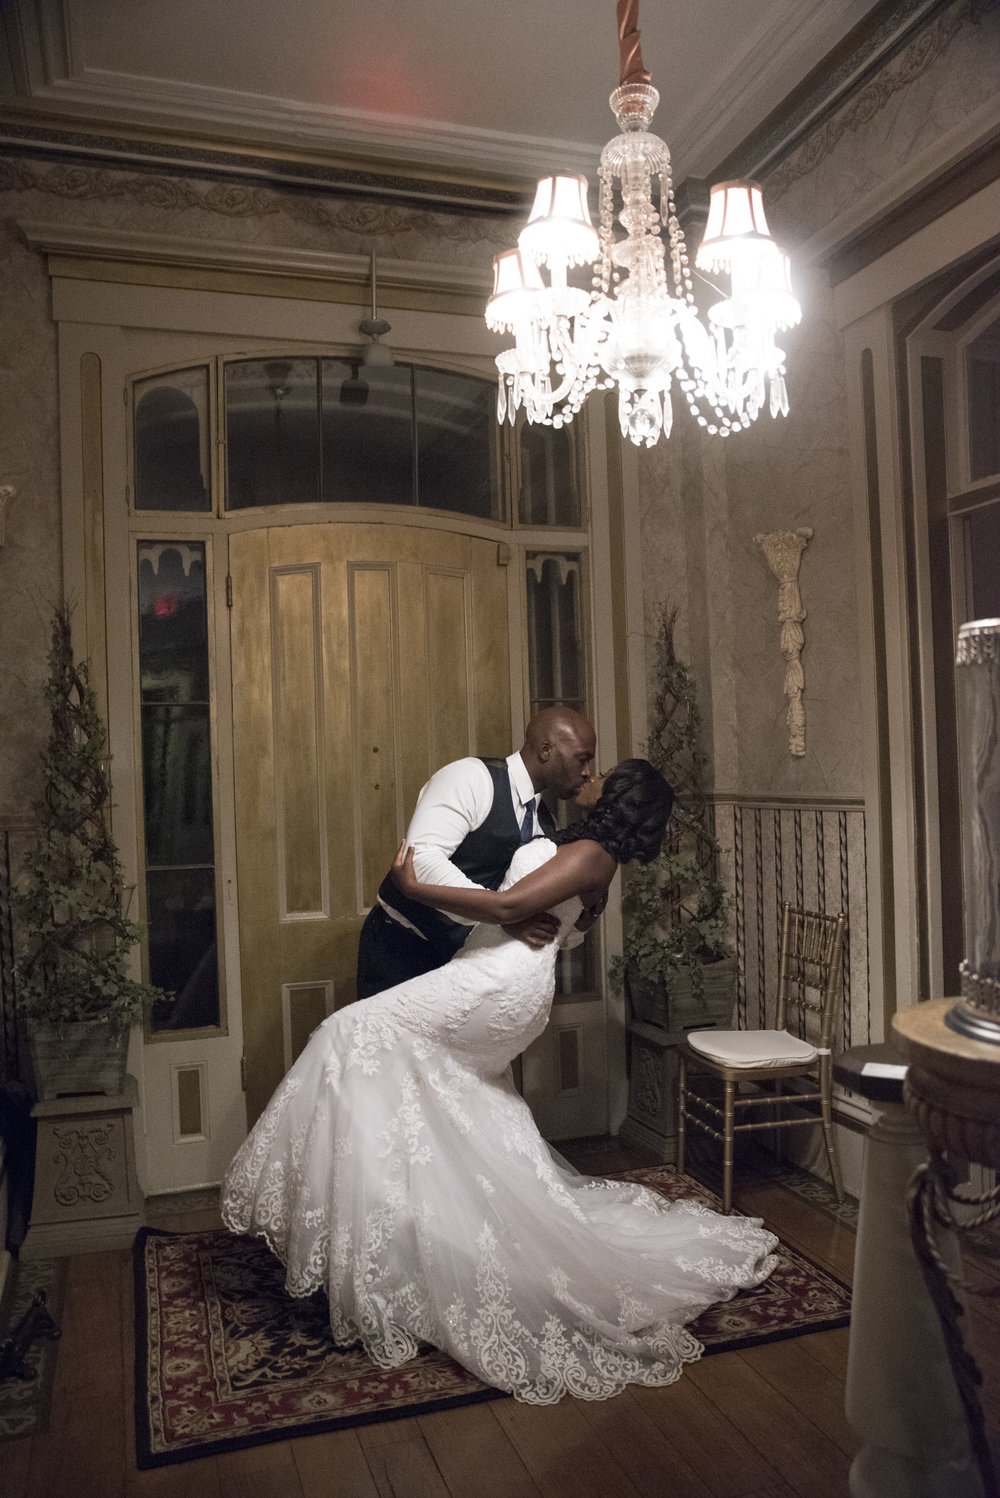 Dominica and Chance's Wedding at Taylor Mansion, Columbus